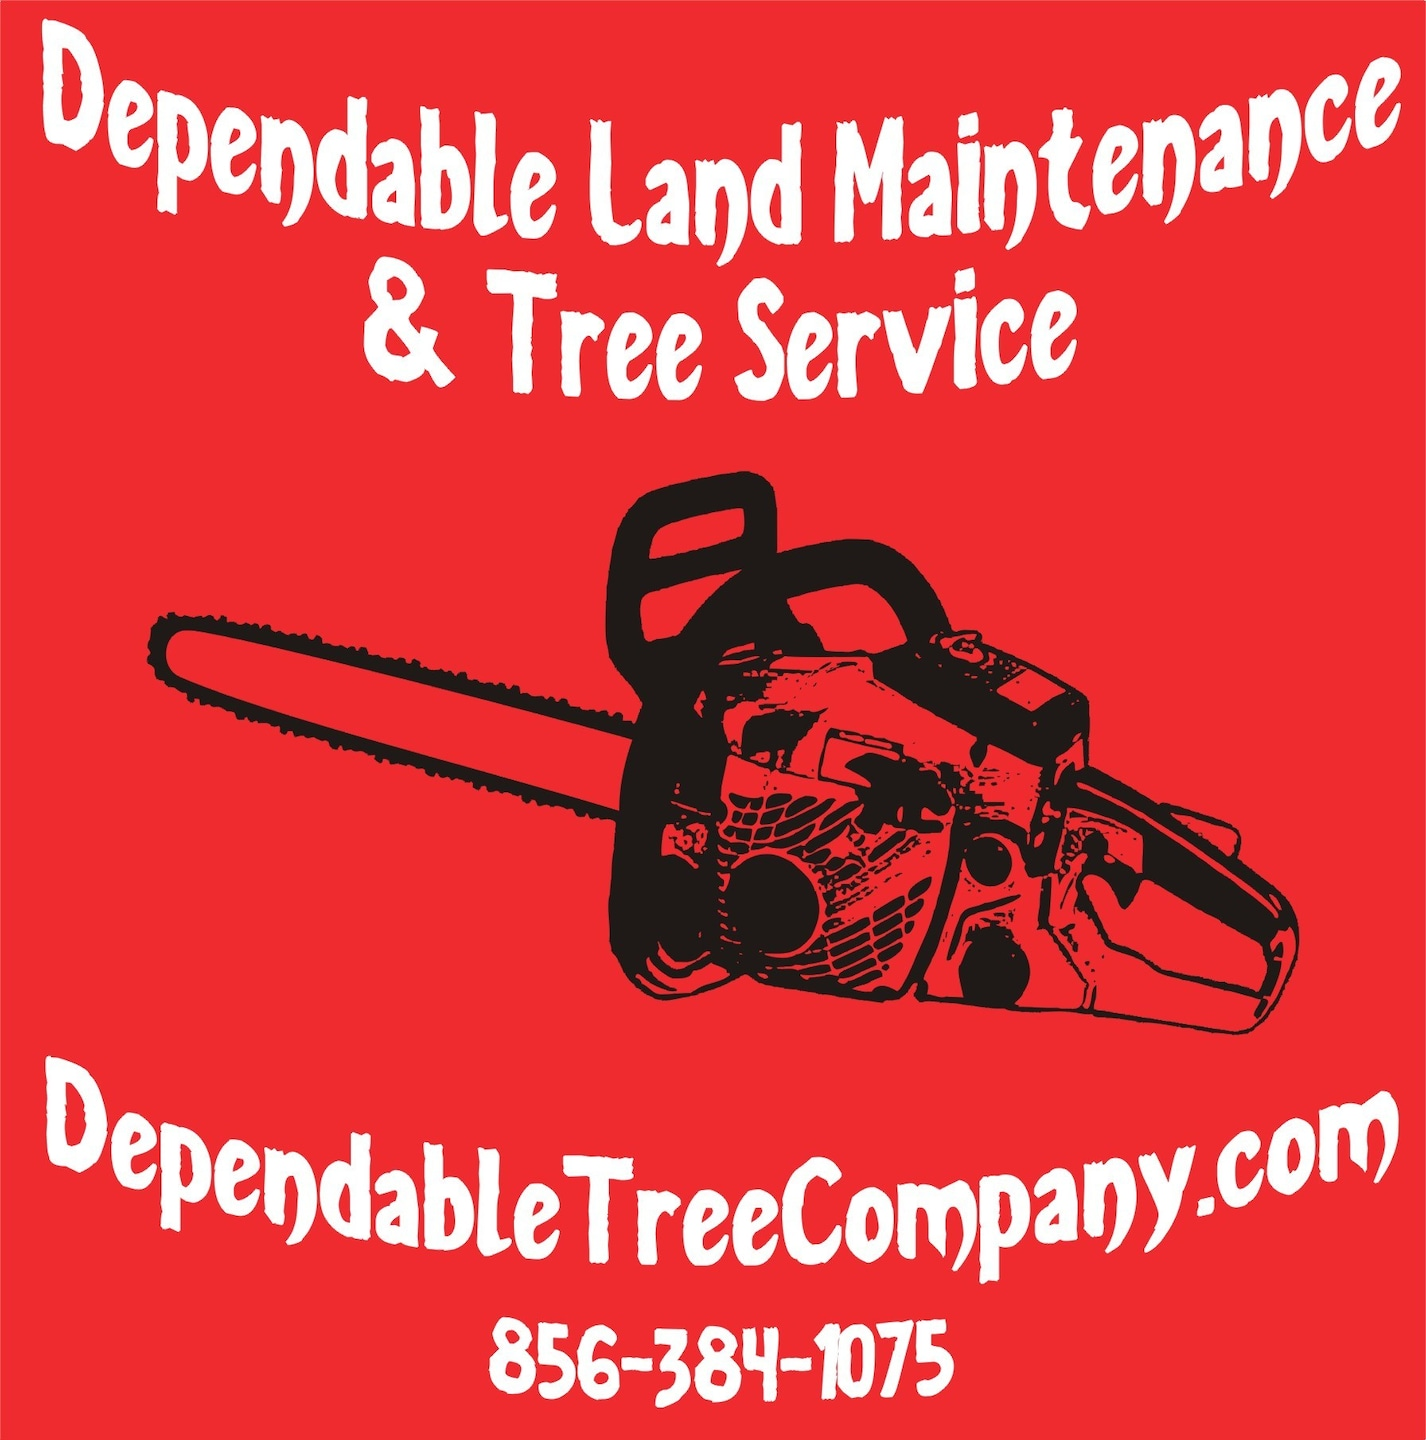 DEPENDABLE TREE COMPANY LLC